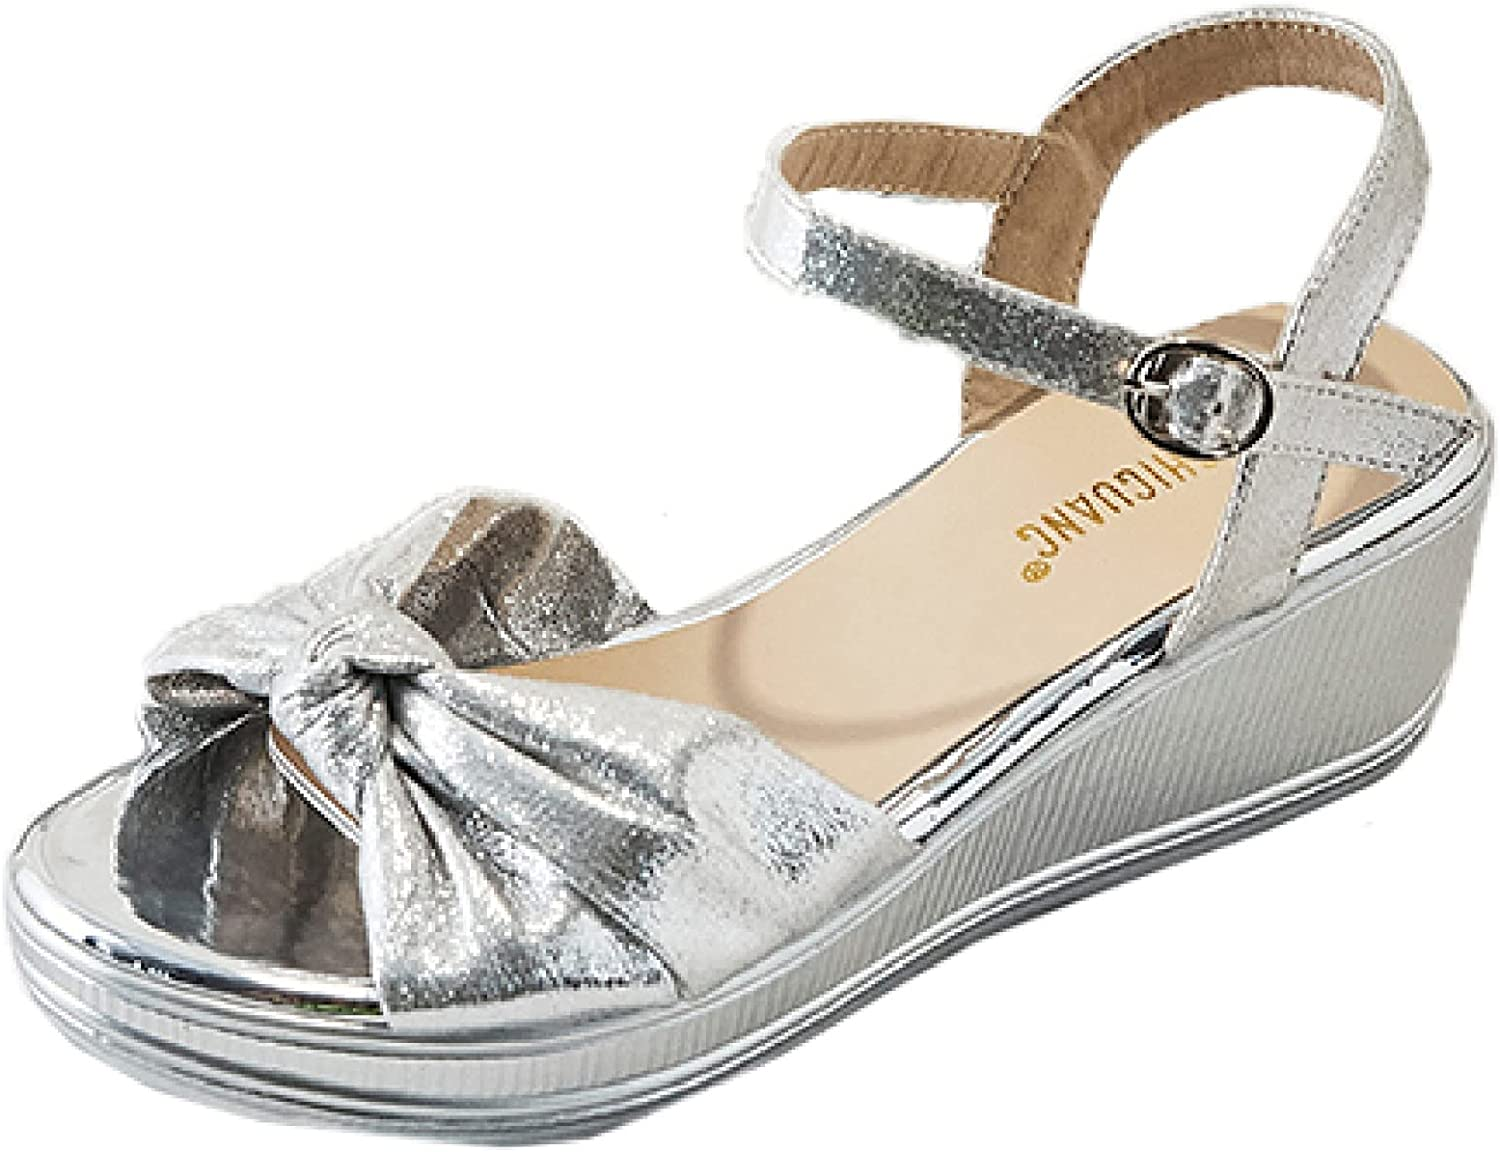 Wedges Trust Sandals Safety and trust for Women's Platform Leather Heel Sparkle Open To